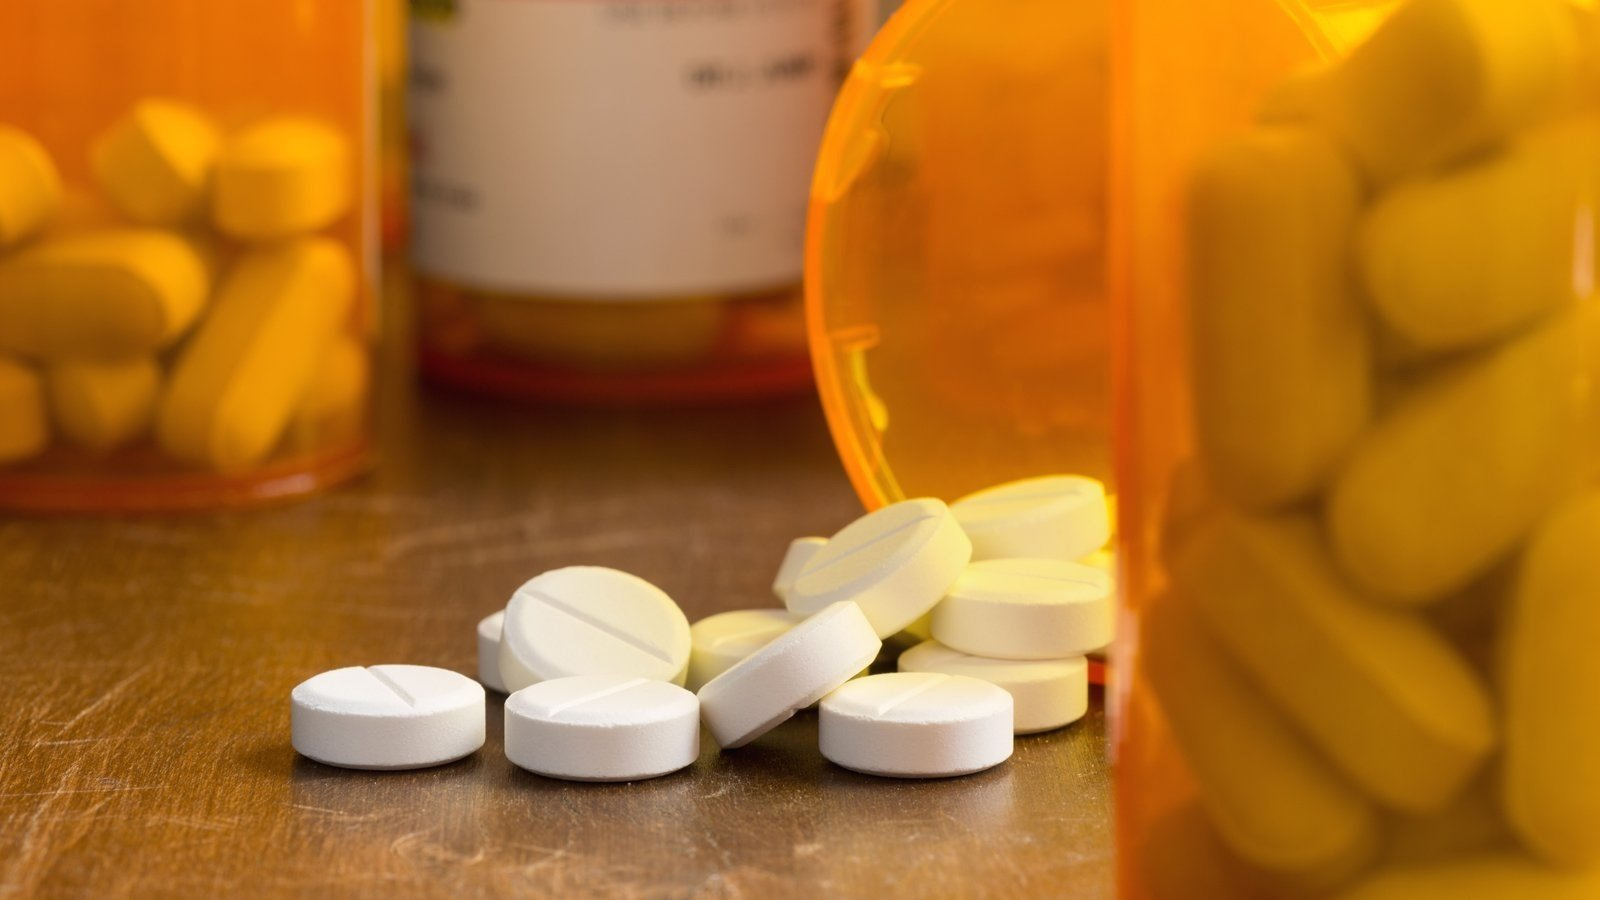 FDA strengthens warning on opioid cold medicine